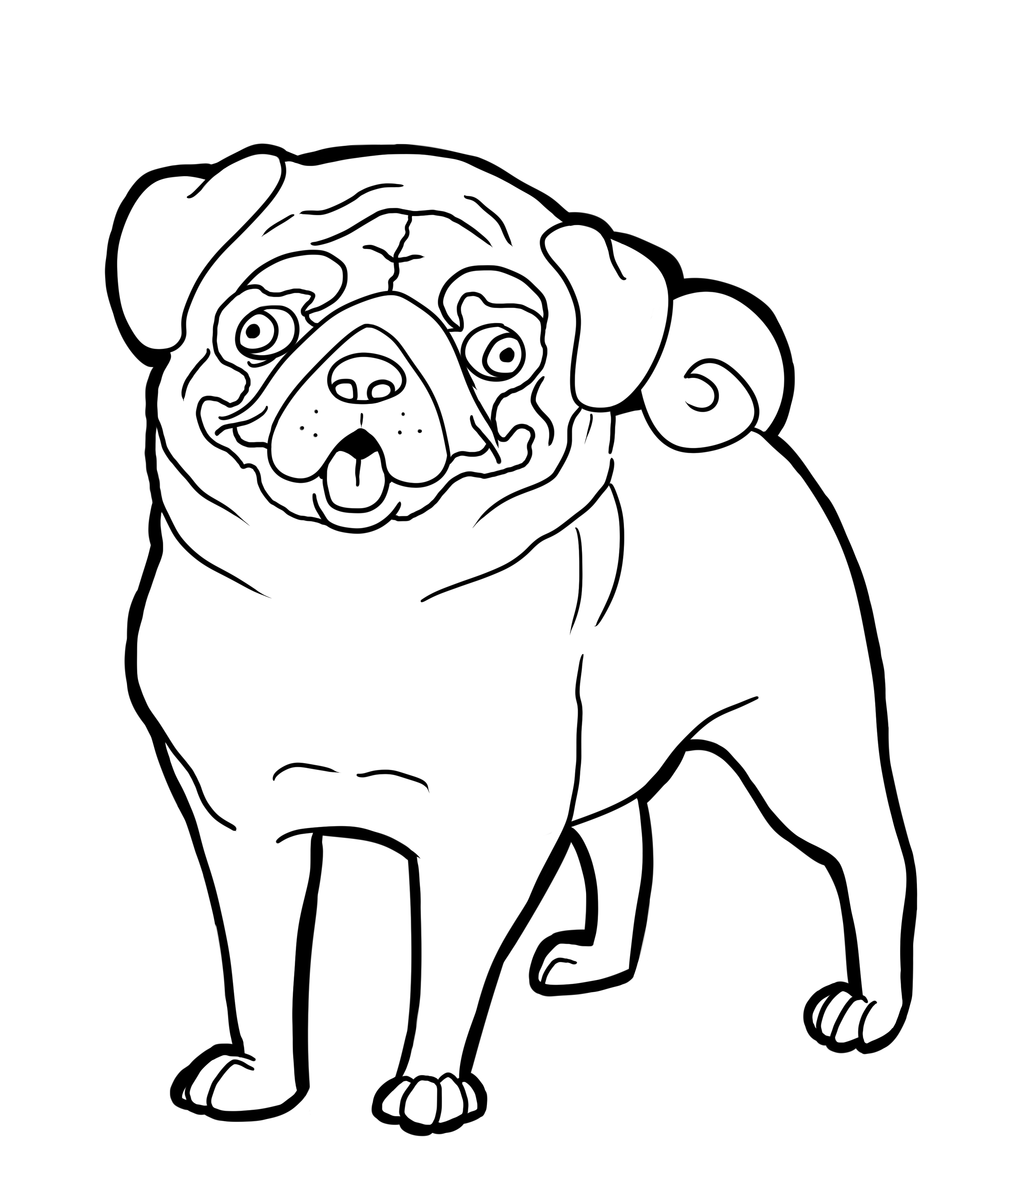 Pug coloring pages best coloring pages for kids for Coloring pages toddler